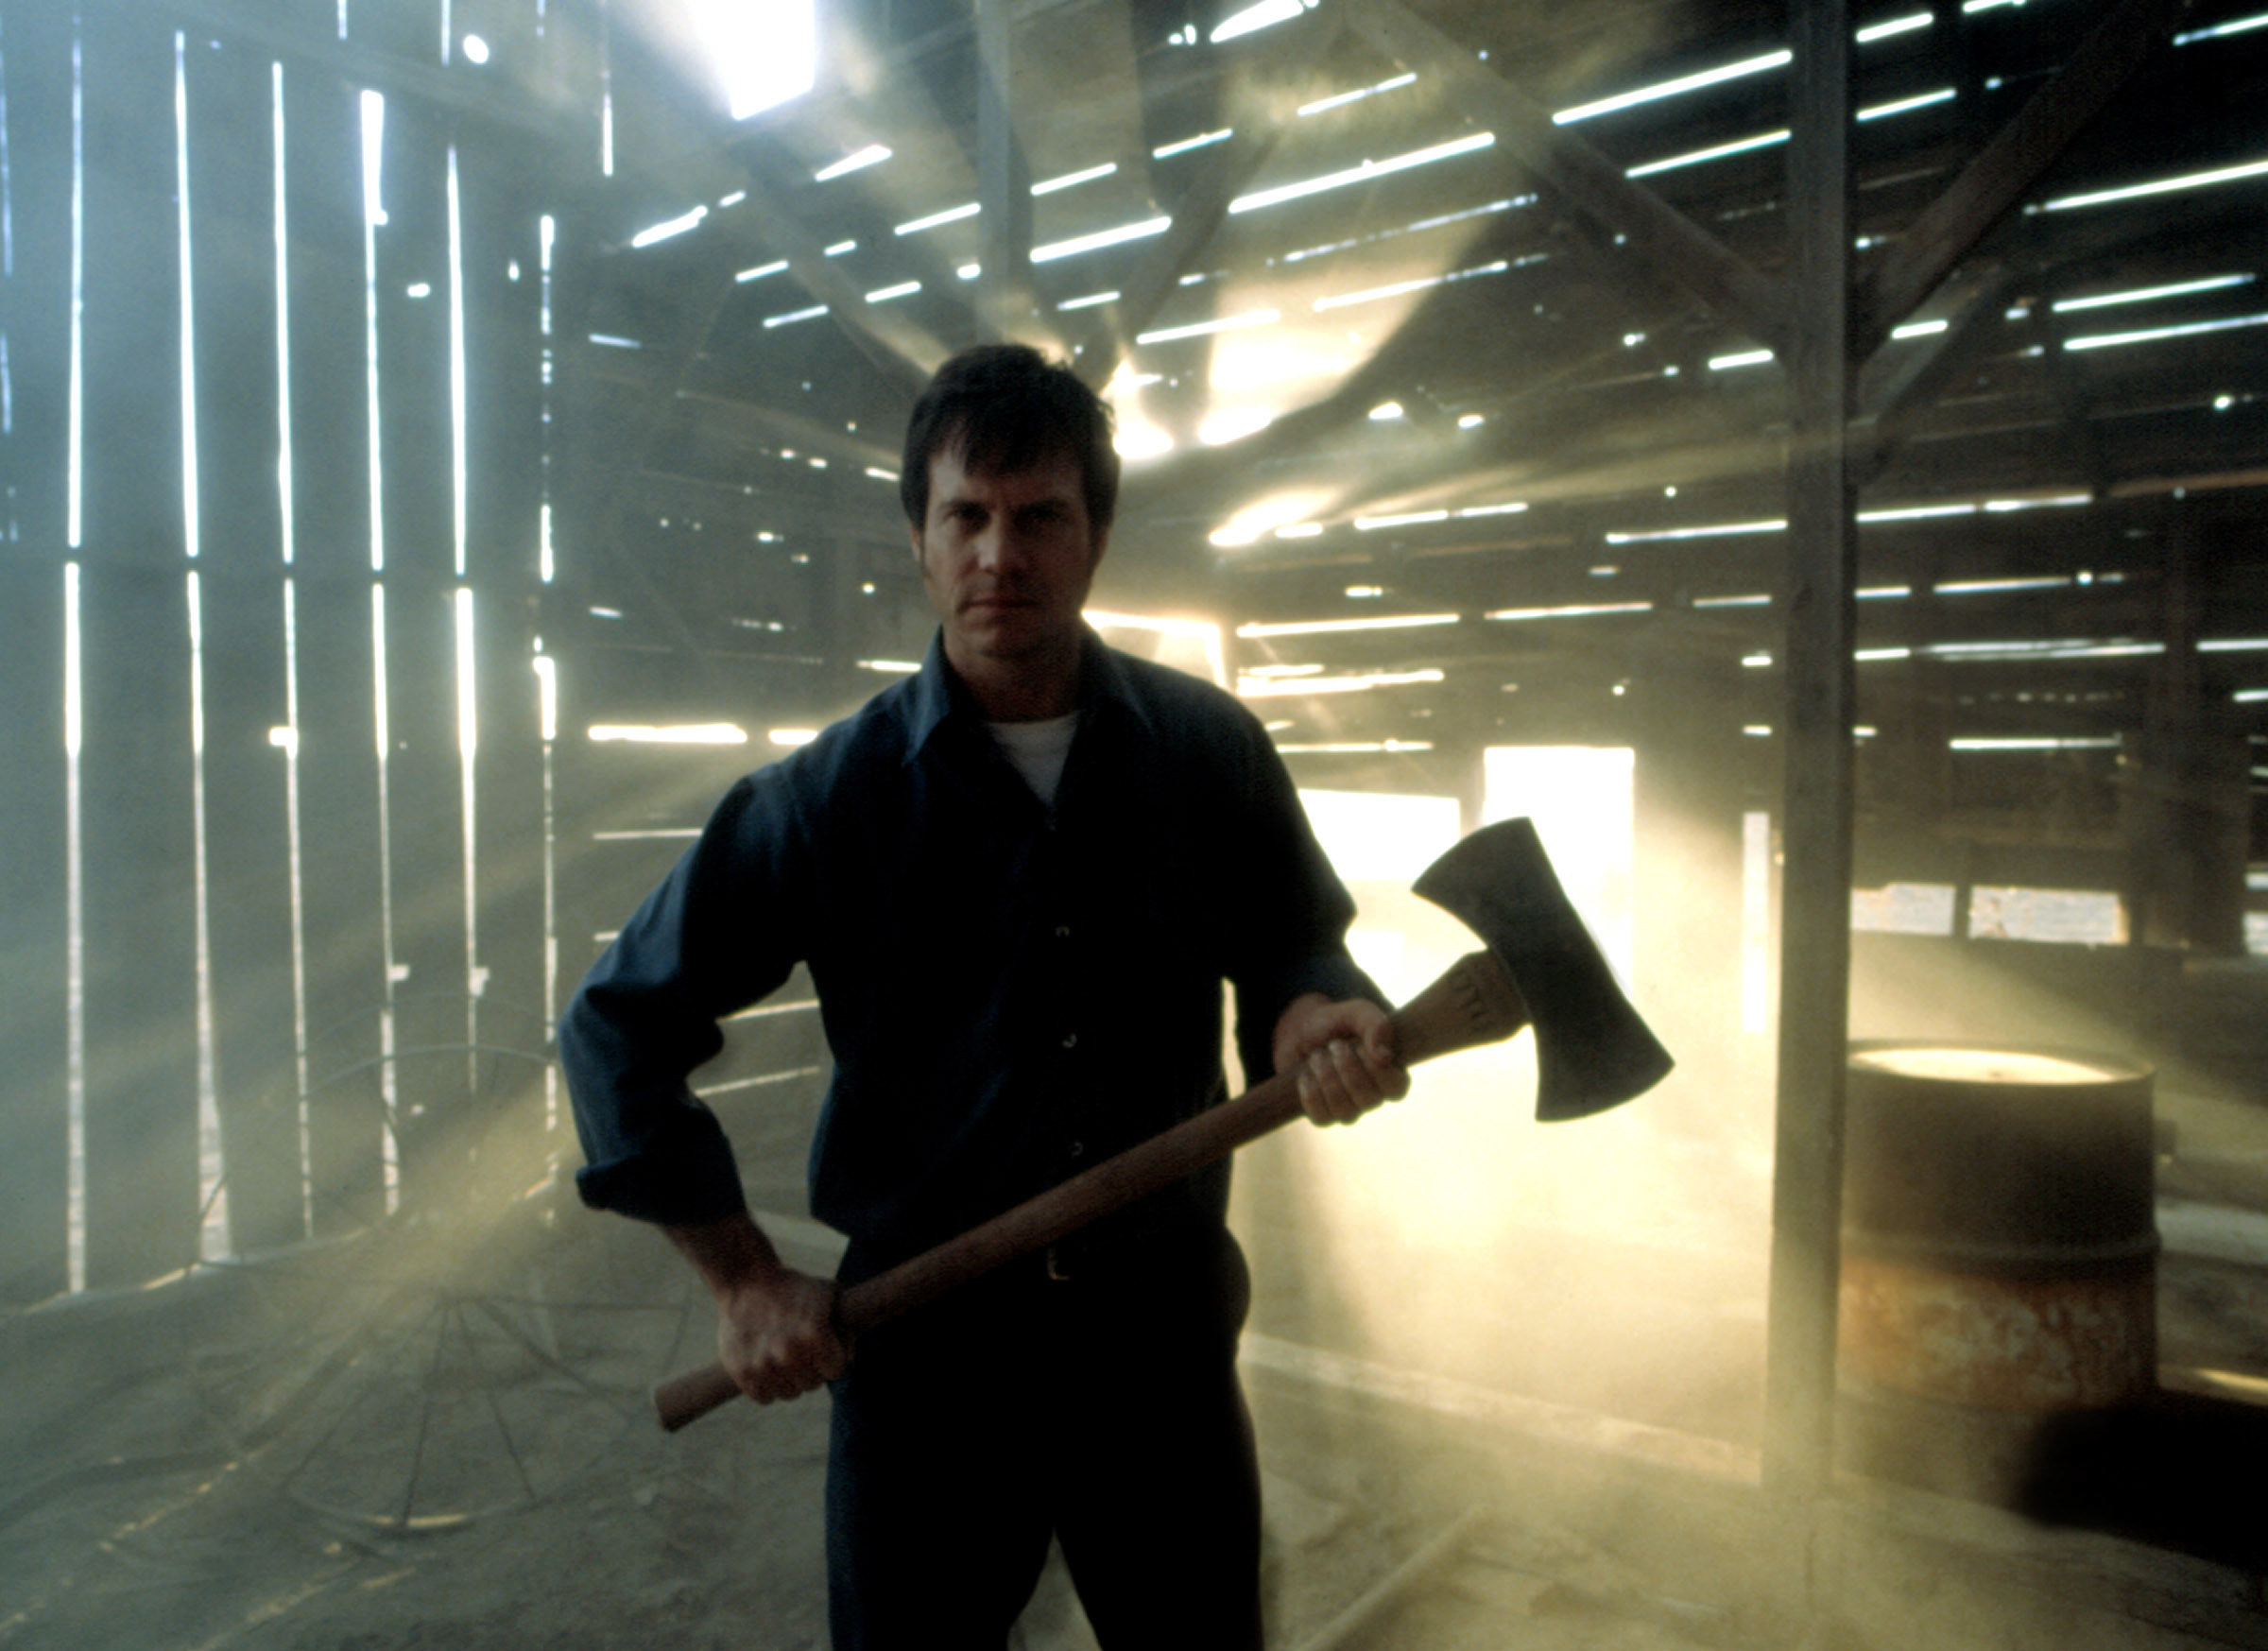 Bill Paxton menacingly wielding a large axe in a spooky barn